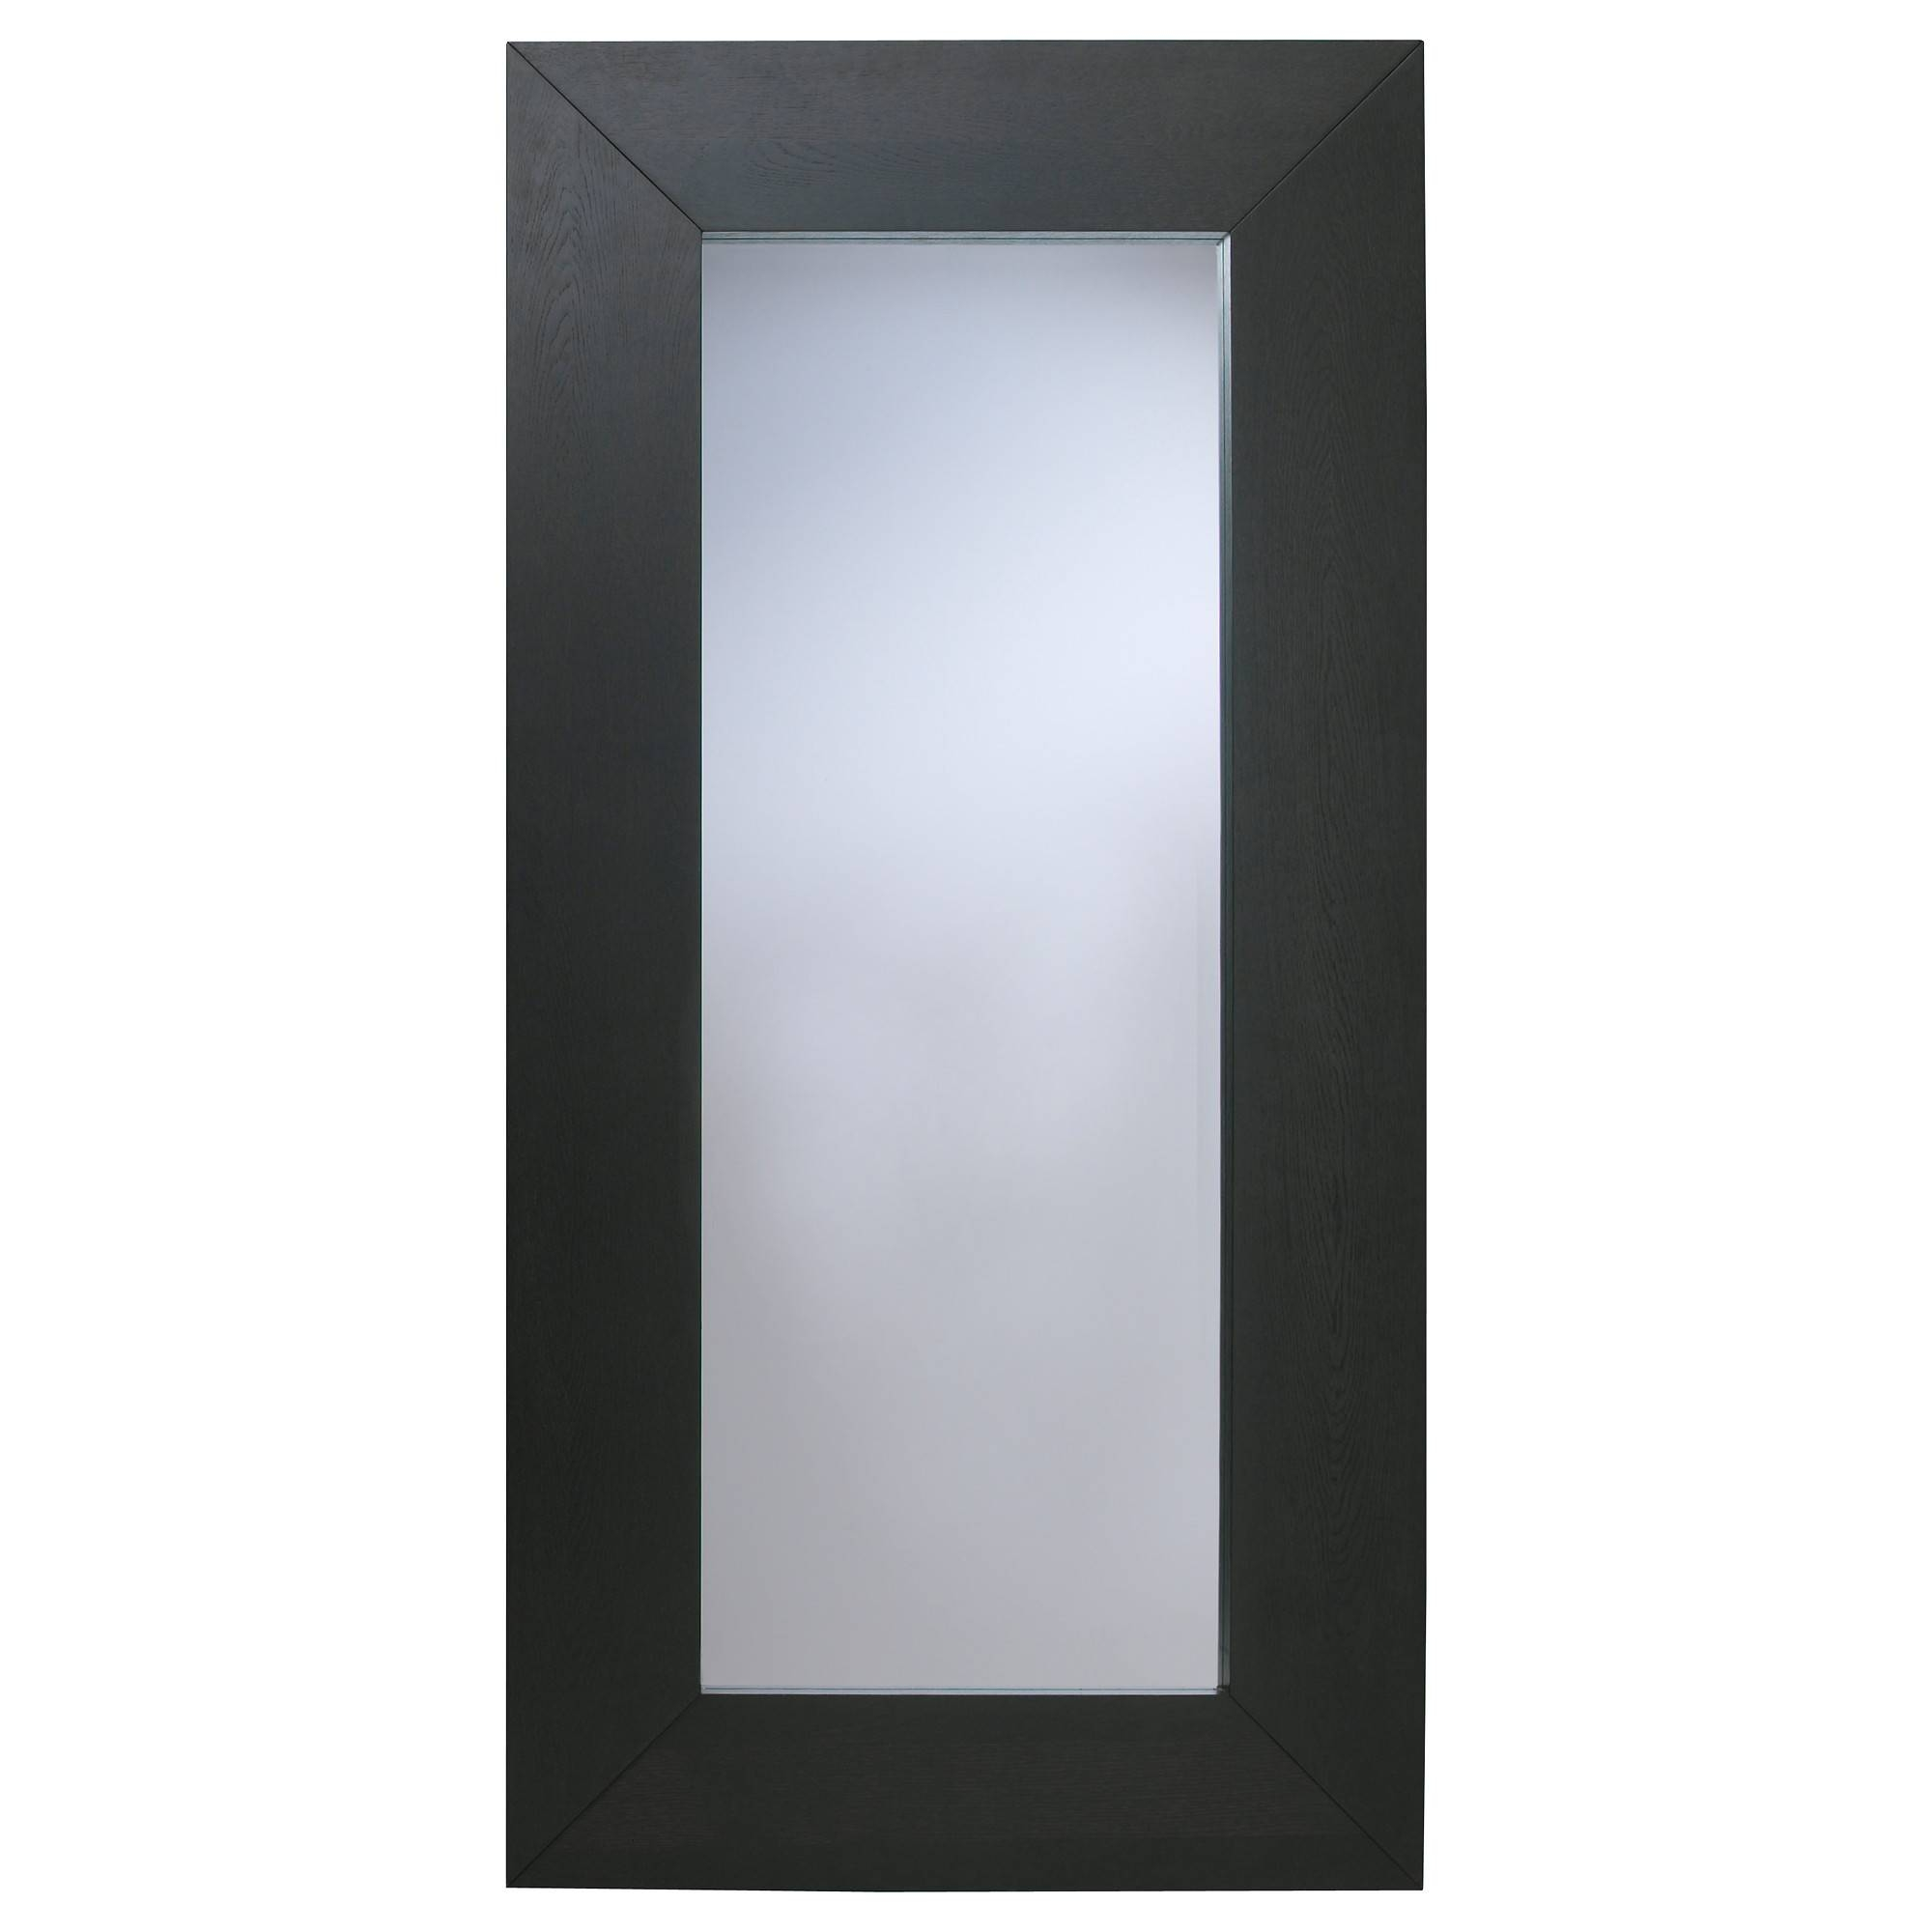 Mongstad Mirror - Ikea pertaining to Large Black Round Mirrors (Image 10 of 15)